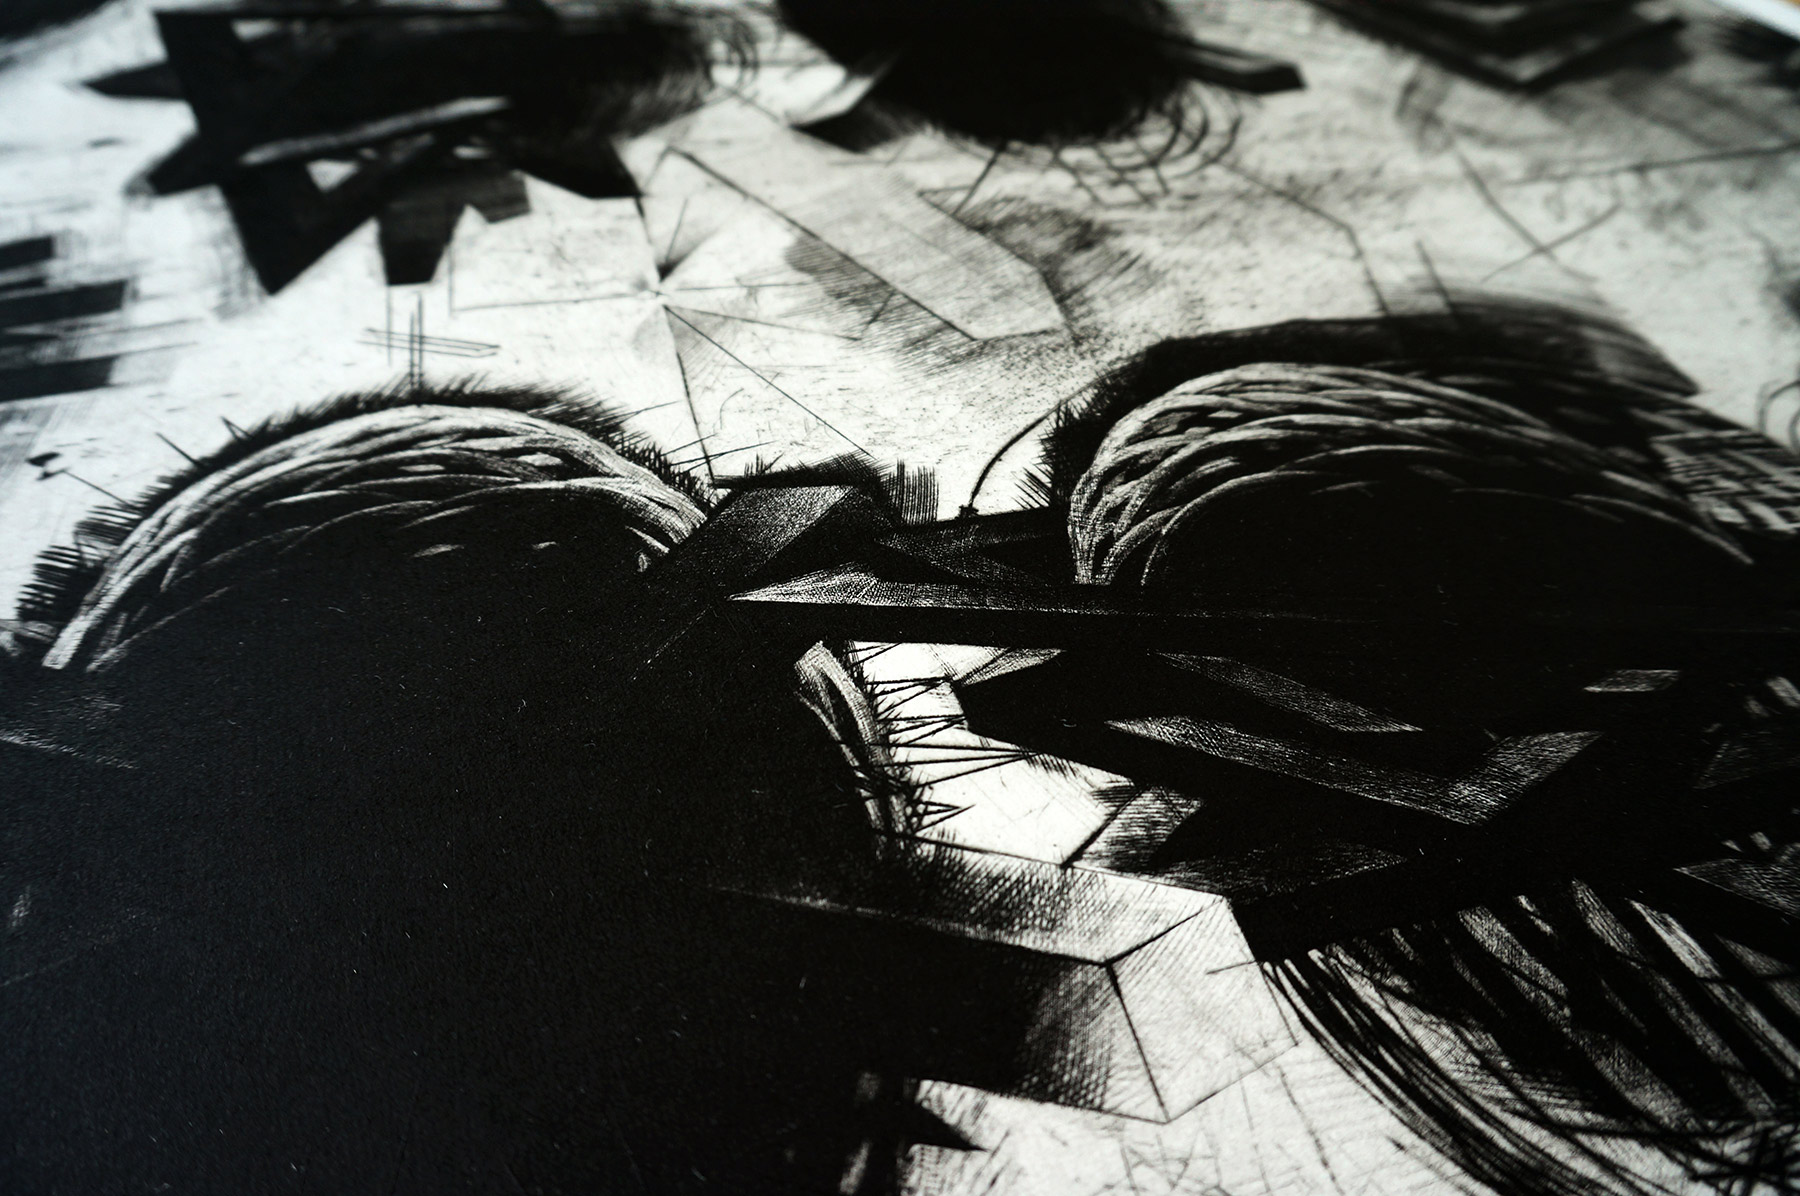 art-prints, engravings, abstract, graphical, monochrome, movement, patterns, black, grey, white, ink, paper, abstract-forms, atmosphere, black-and-white, conceptual, danish, decorative, design, interior, interior-design, nordic, scandinavien, Buy original high quality art. Paintings, drawings, limited edition prints & posters by talented artists.